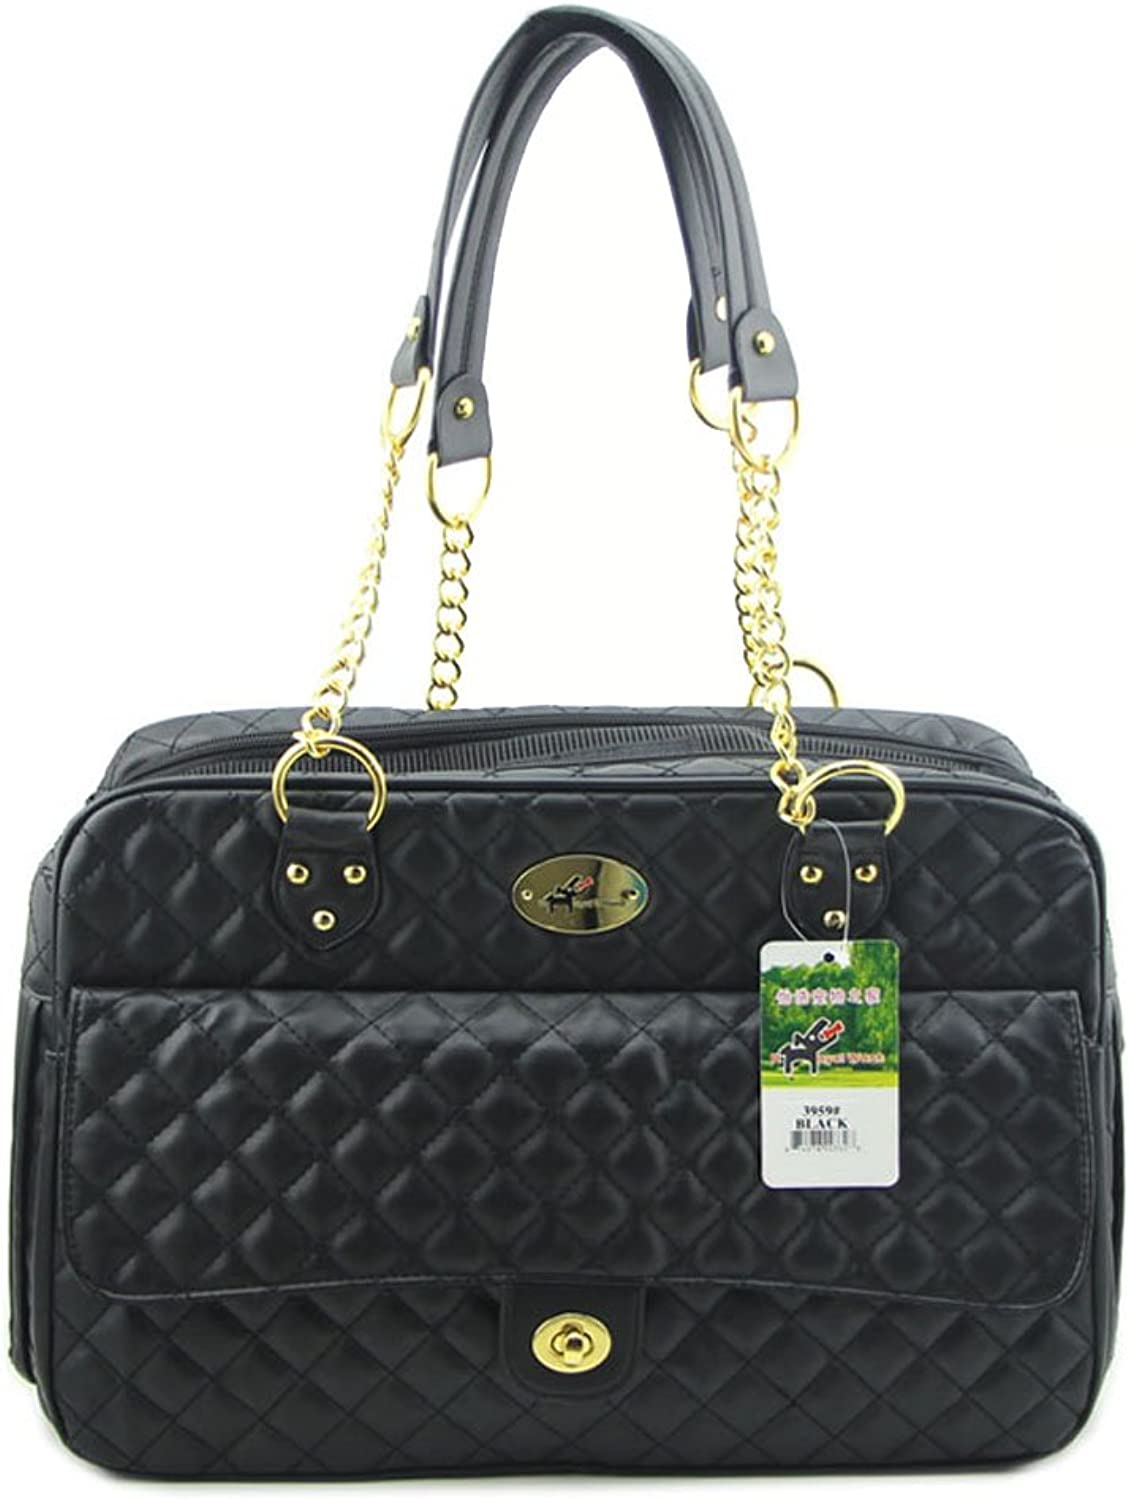 BJOY New Dog Carrier Dog Handbag Dog Purse Pet Tote Bag Soft Sided Pet Carriers with Double Chain Handles Black